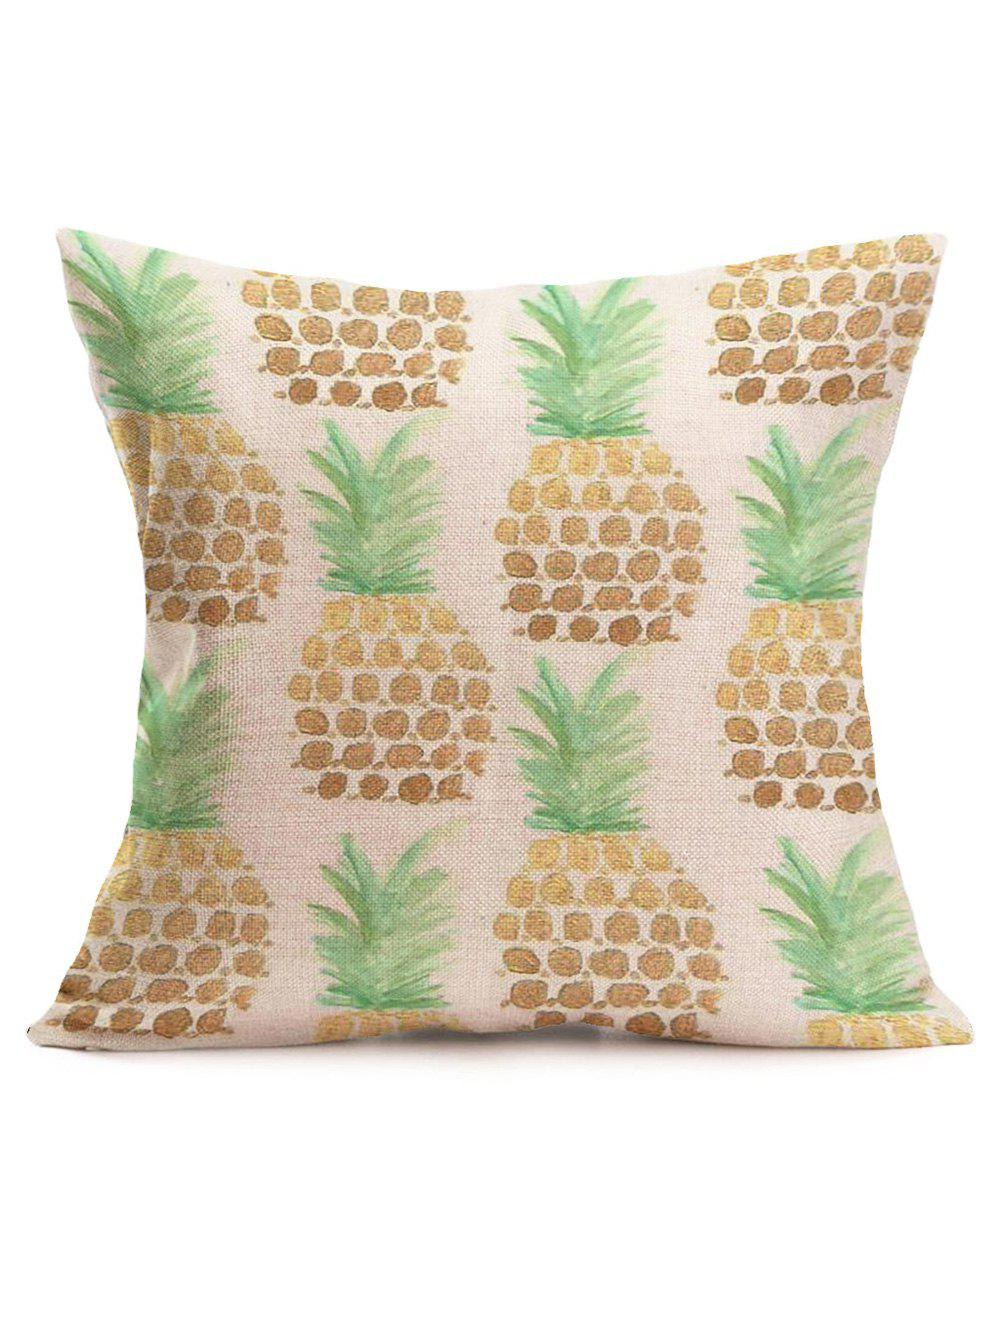 Pineapple Linen Sofa Throw Pillow Case handpainted pineapple and fern printed pillow case